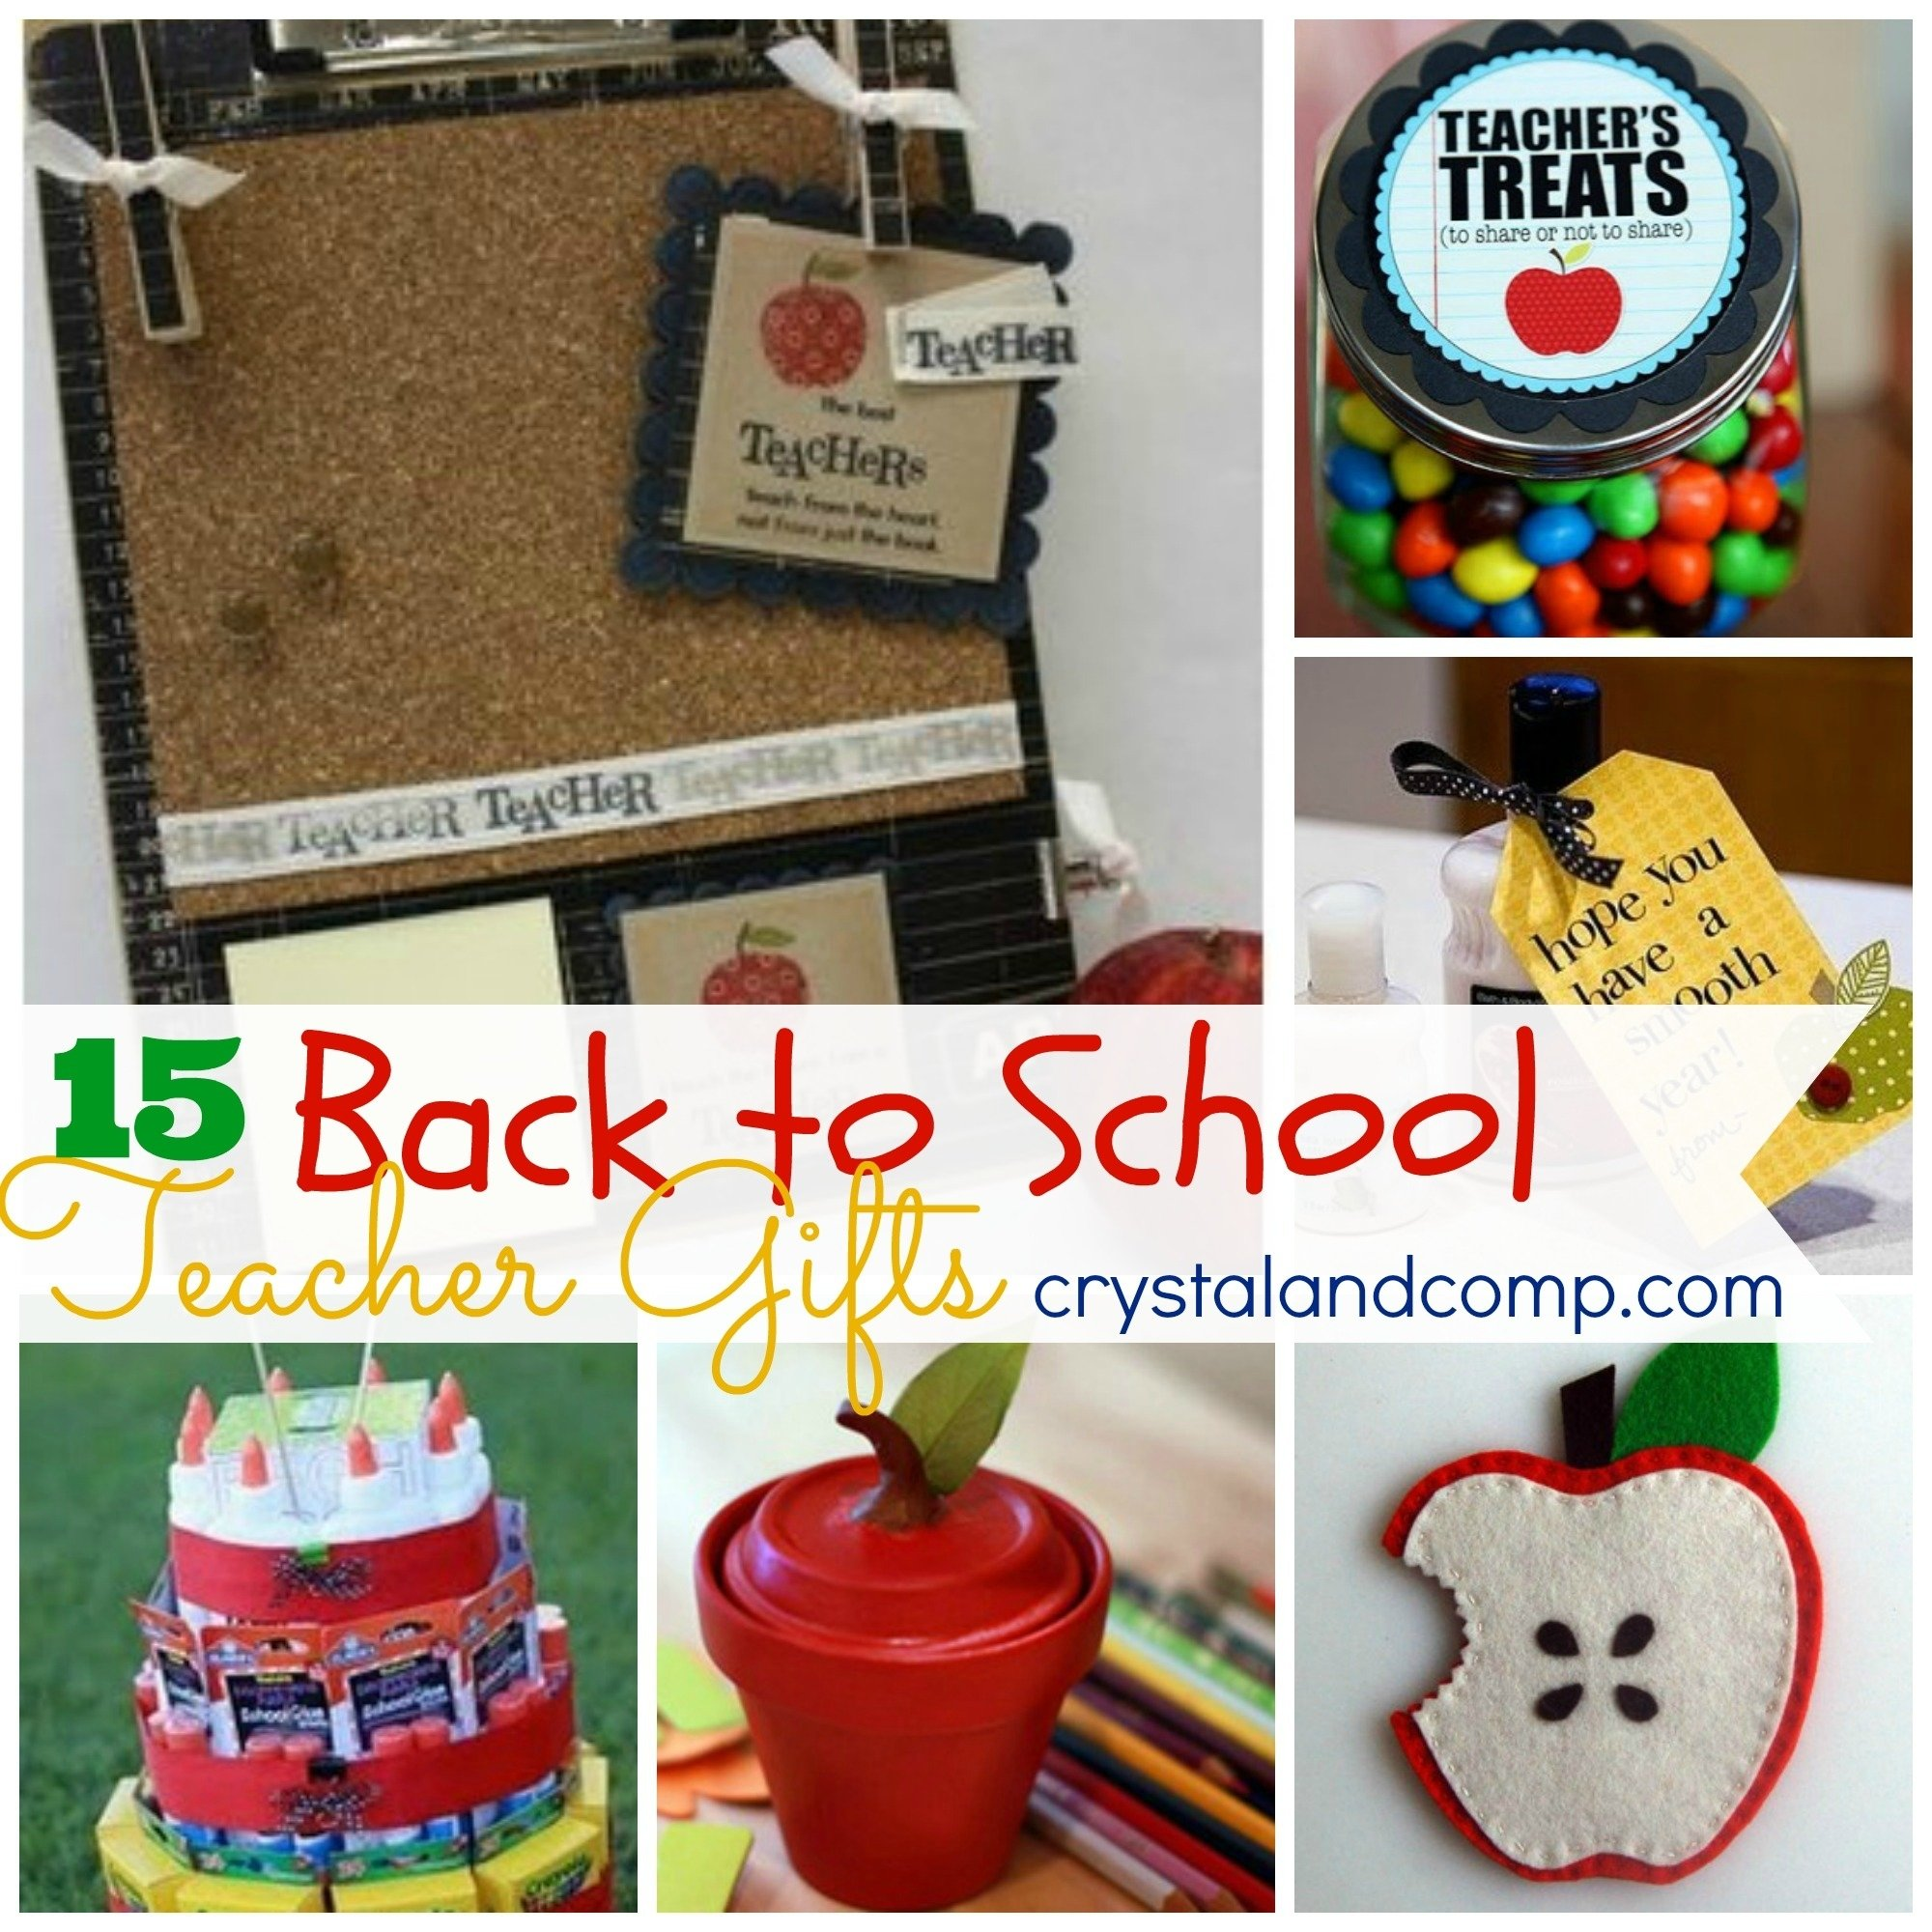 10 Stylish Back To School Gift Ideas For Teachers back to school tips teacher gift ideas 2